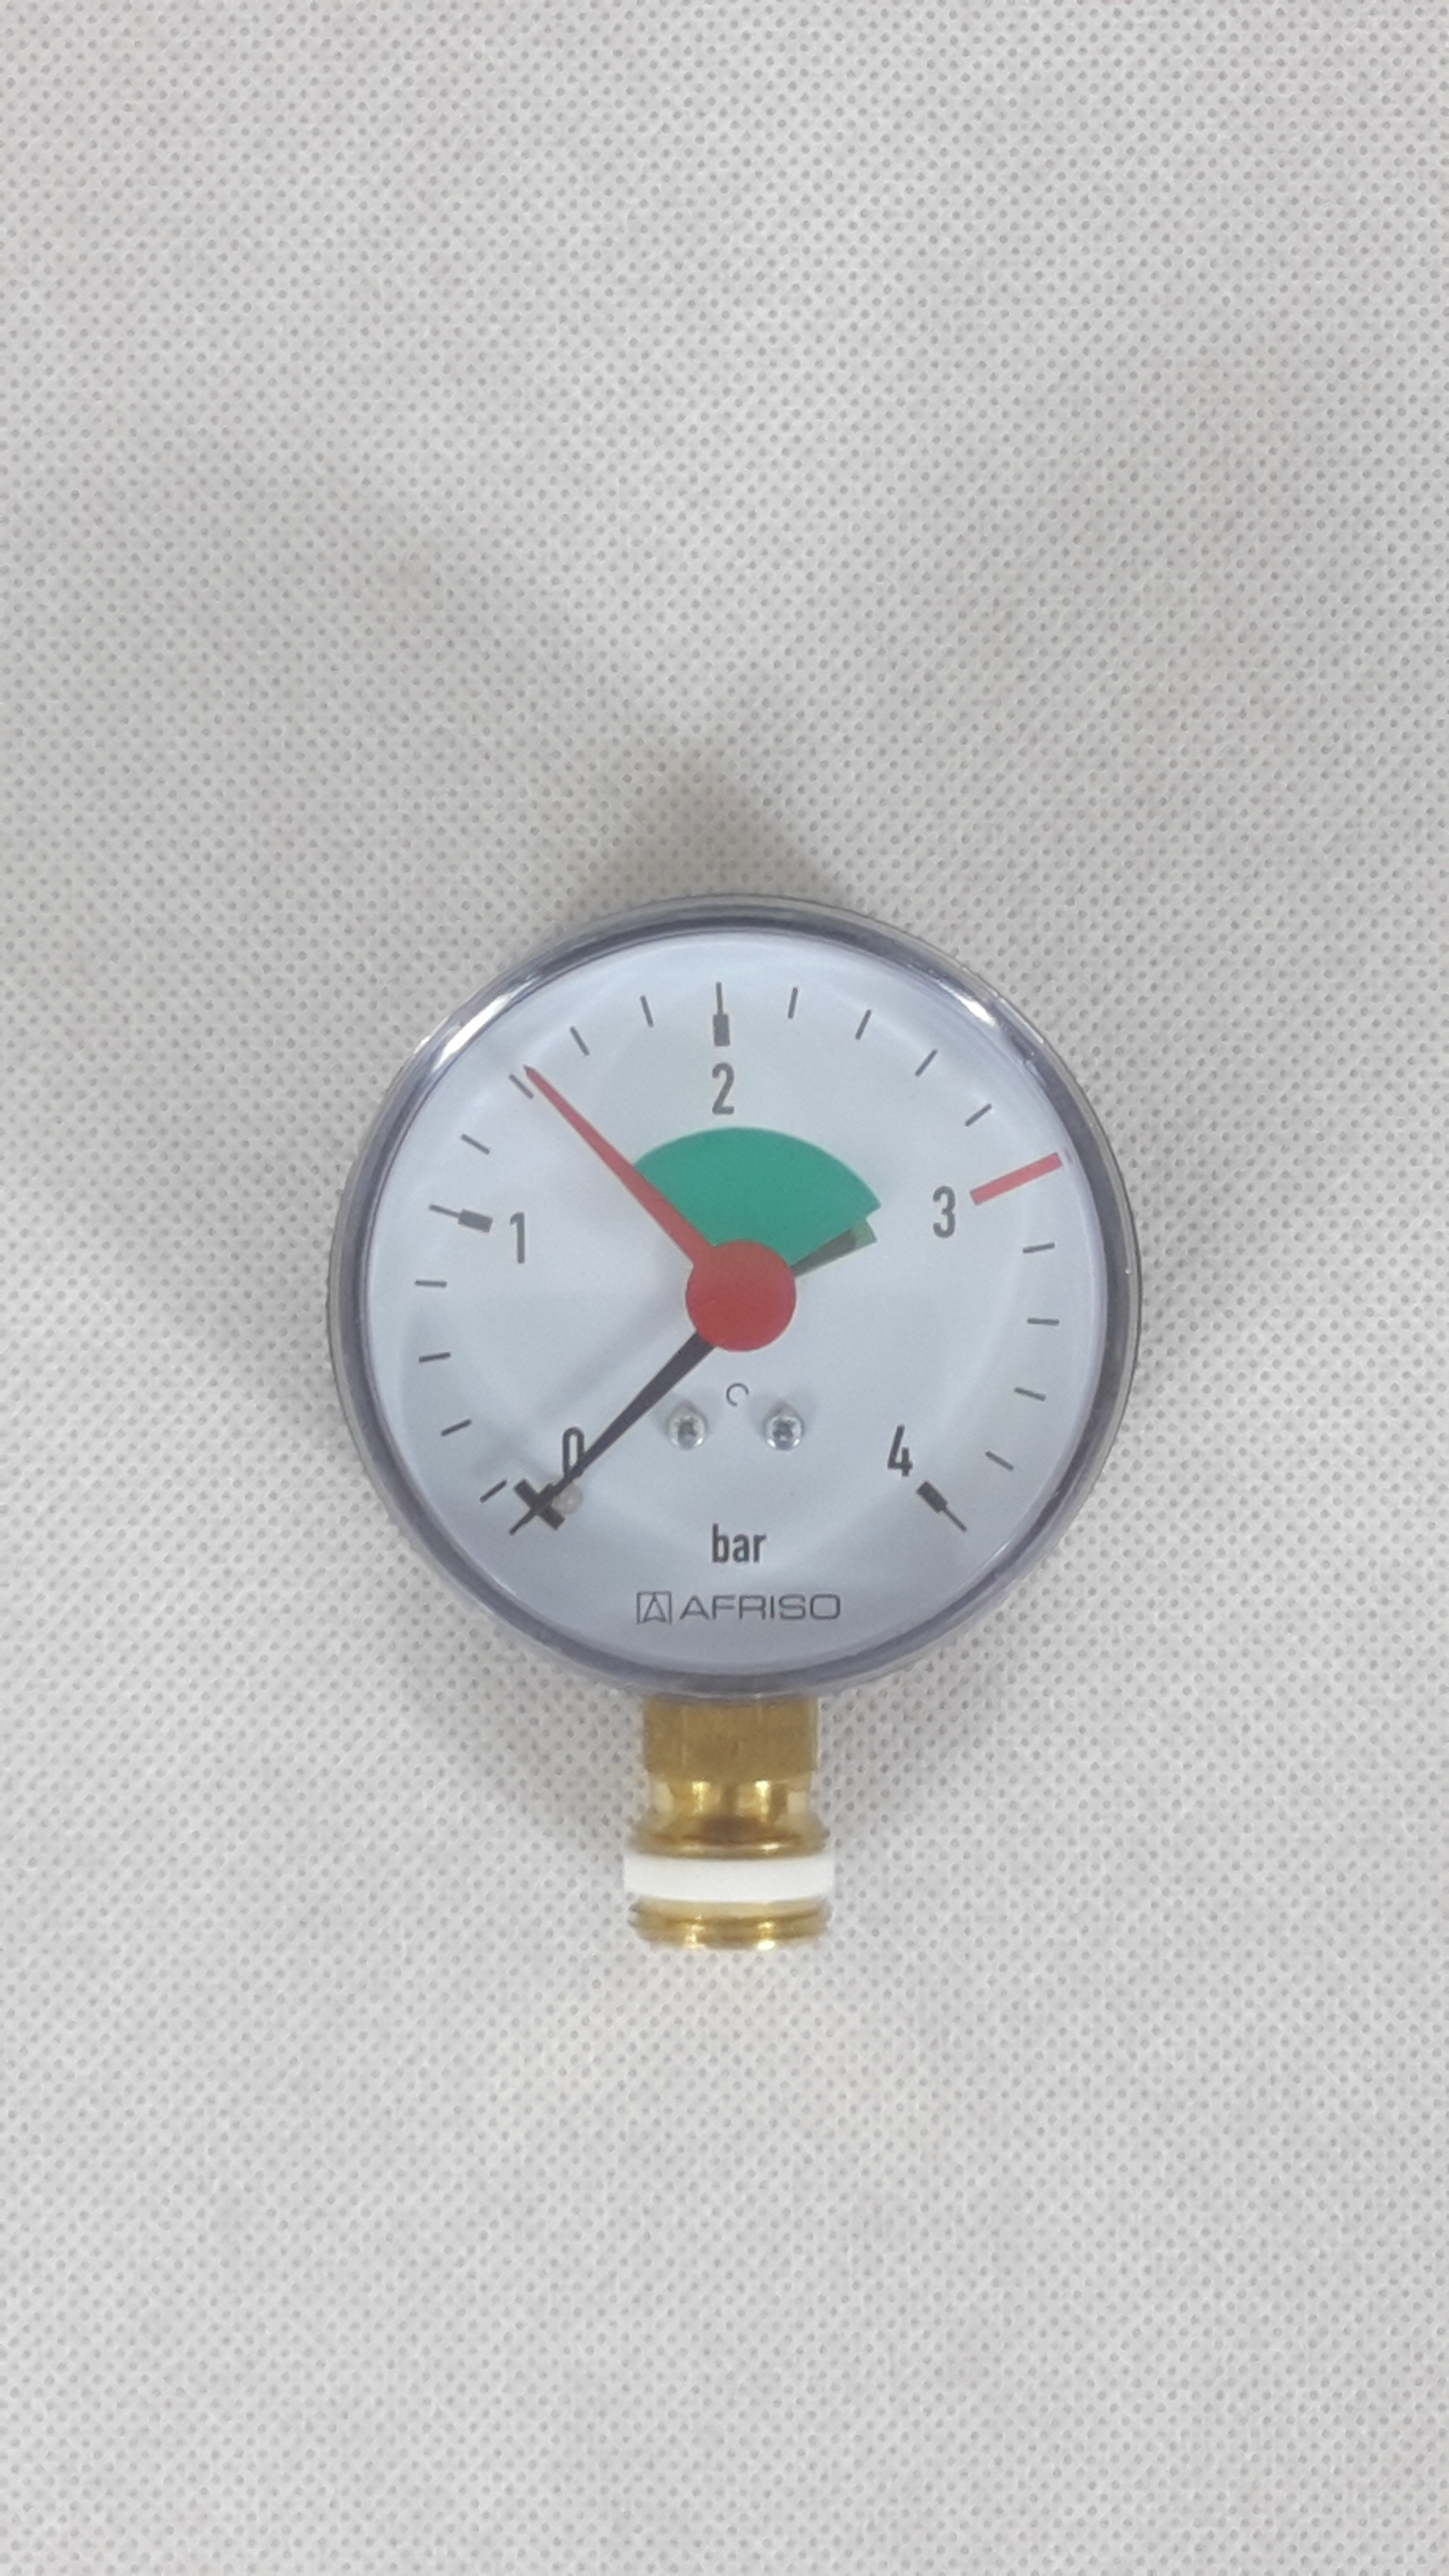 Heizungsmanometer 63mm radial